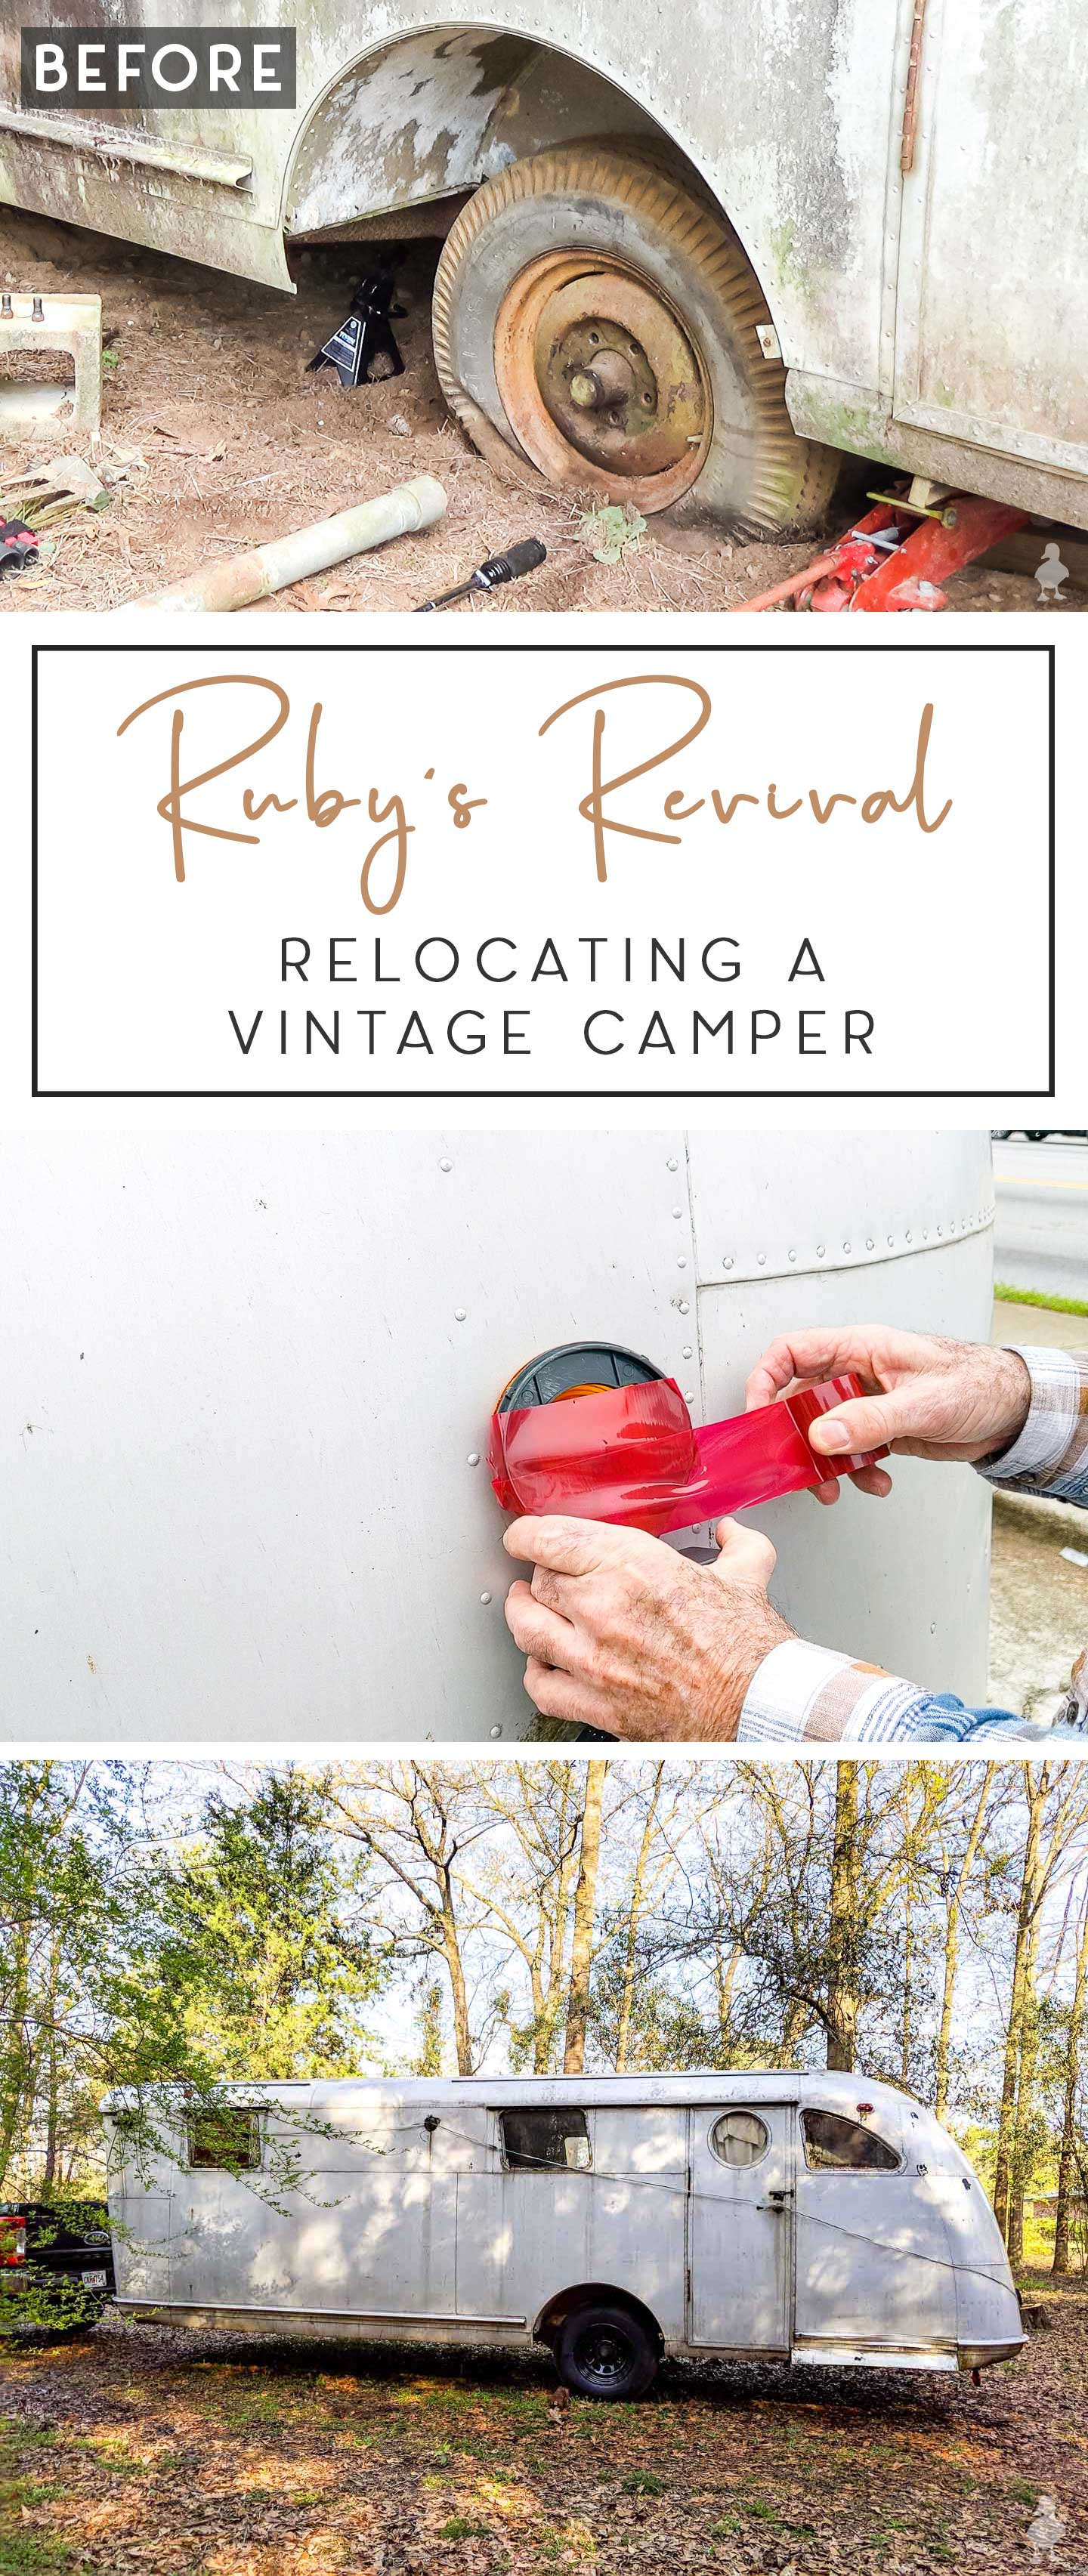 relocating a vintage camper